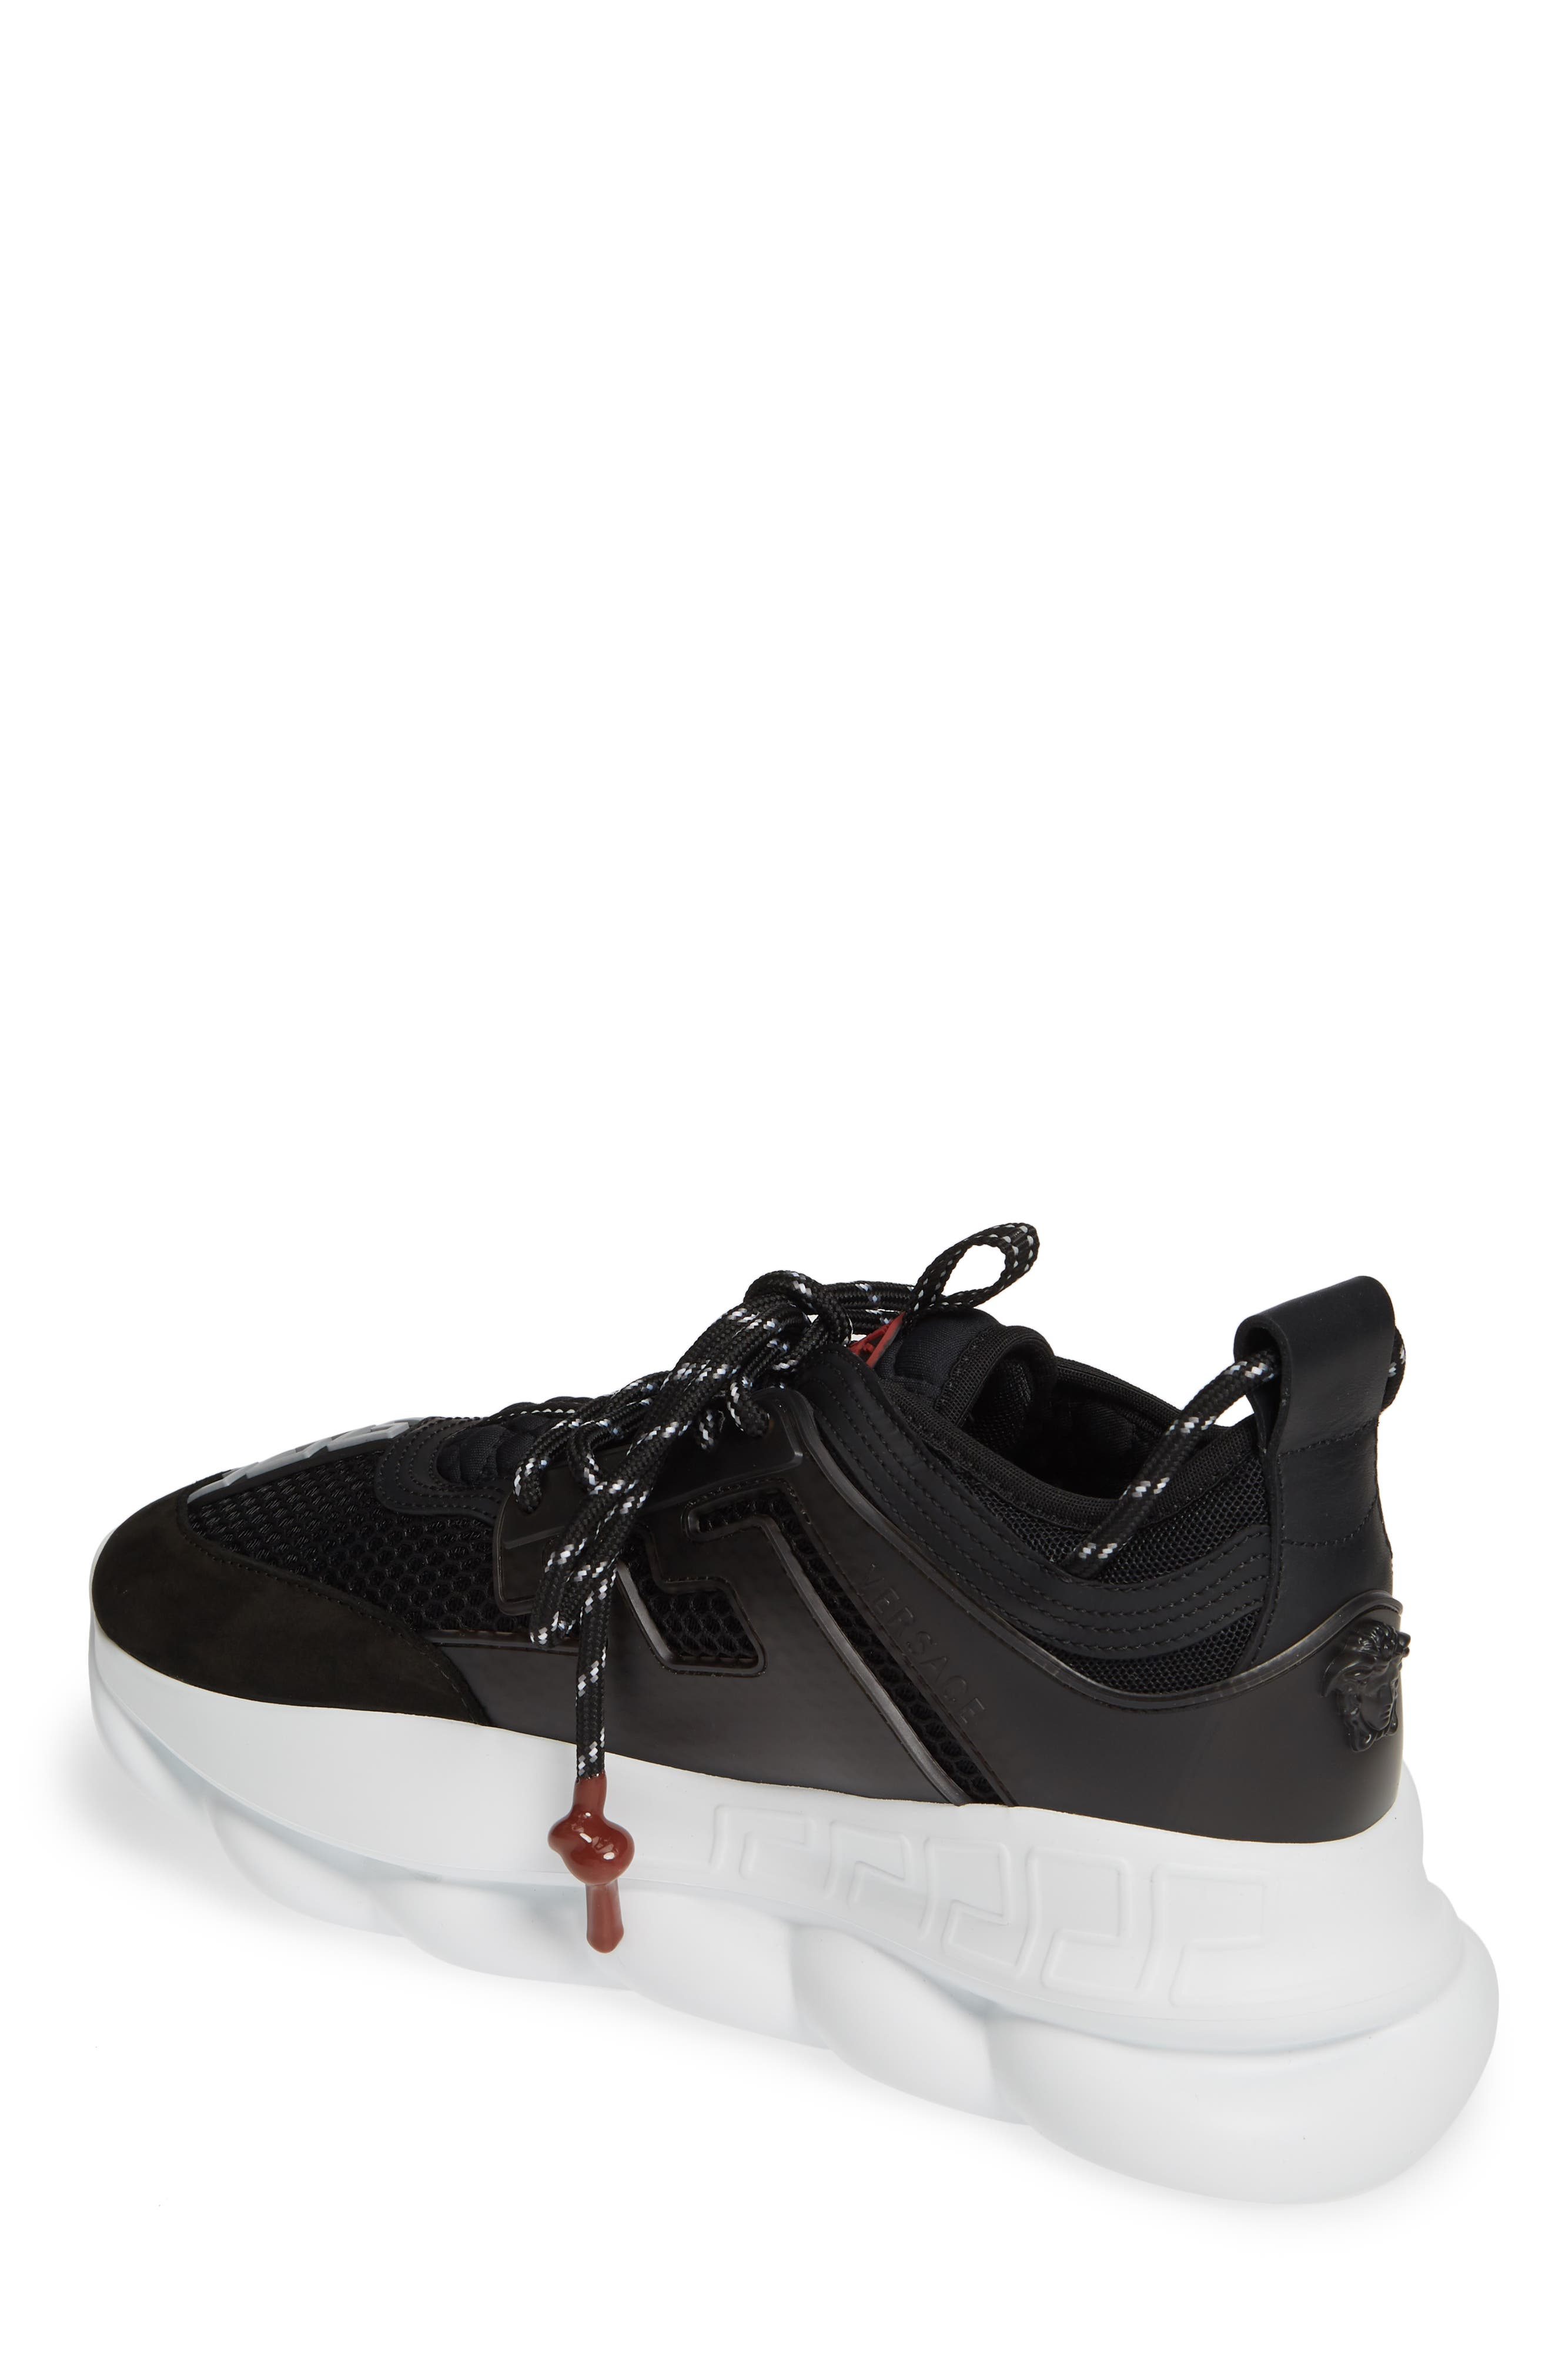 VERSACE FIRST LINE, Versace Chain Reaction Sneaker, Alternate thumbnail 2, color, BLACK/ GREY